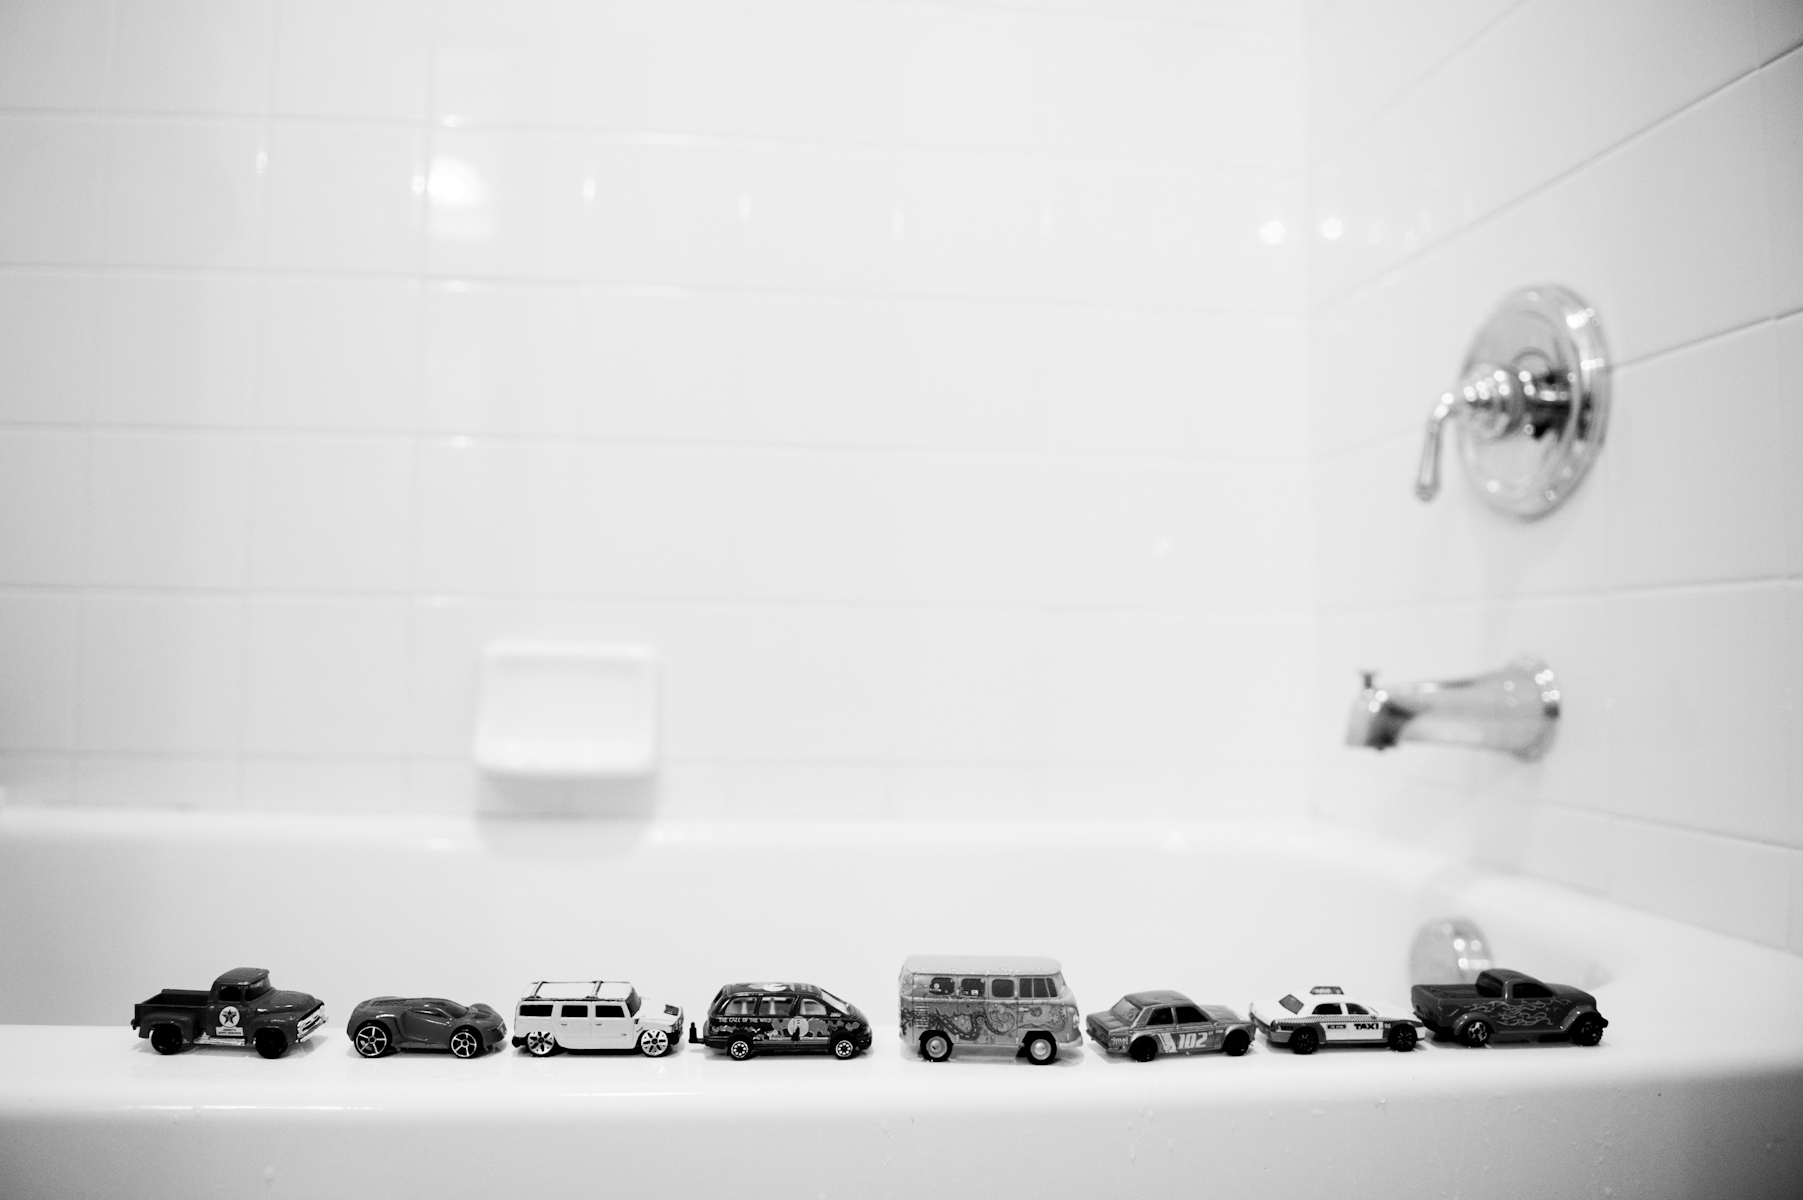 Brendan has precisely lined up toy cars up on the side of the bathtub since he was young.  It made his parents nervous because Marcus had the same habit at the time he was diagnosed with autism.  Repetitive, obsessive behavior is a classic sign of autism, but Brendan was merely imitating his brother.